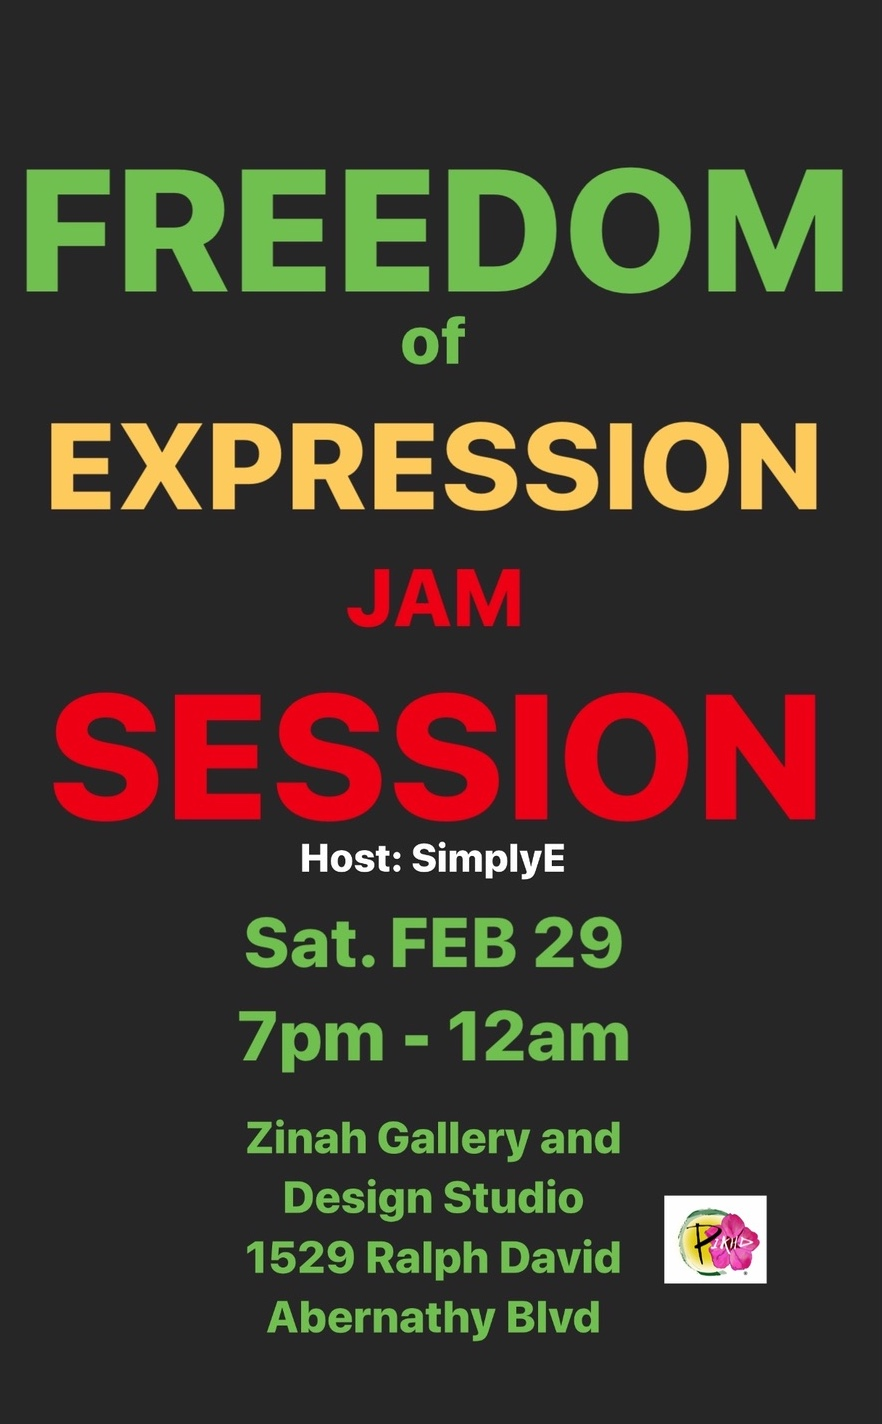 Freedom of Expression Jam Session